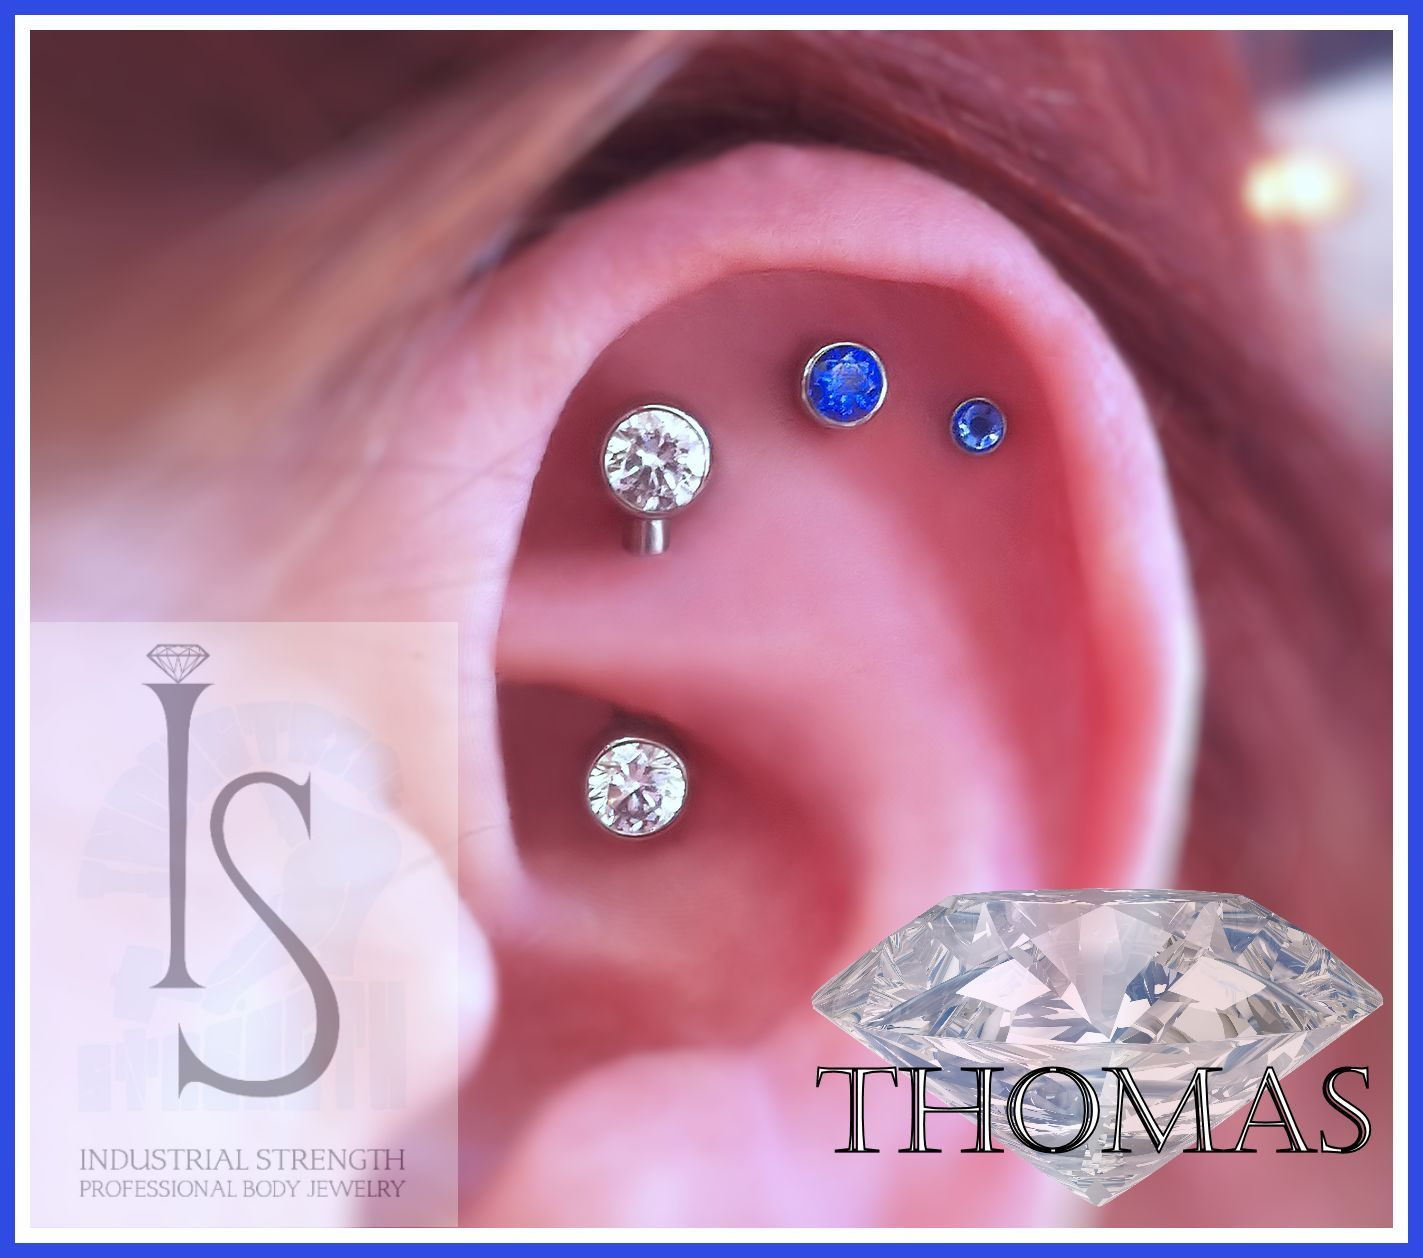 Piercing names in mouth  triple cartilage piercing using rook and fossa placement Jewelry